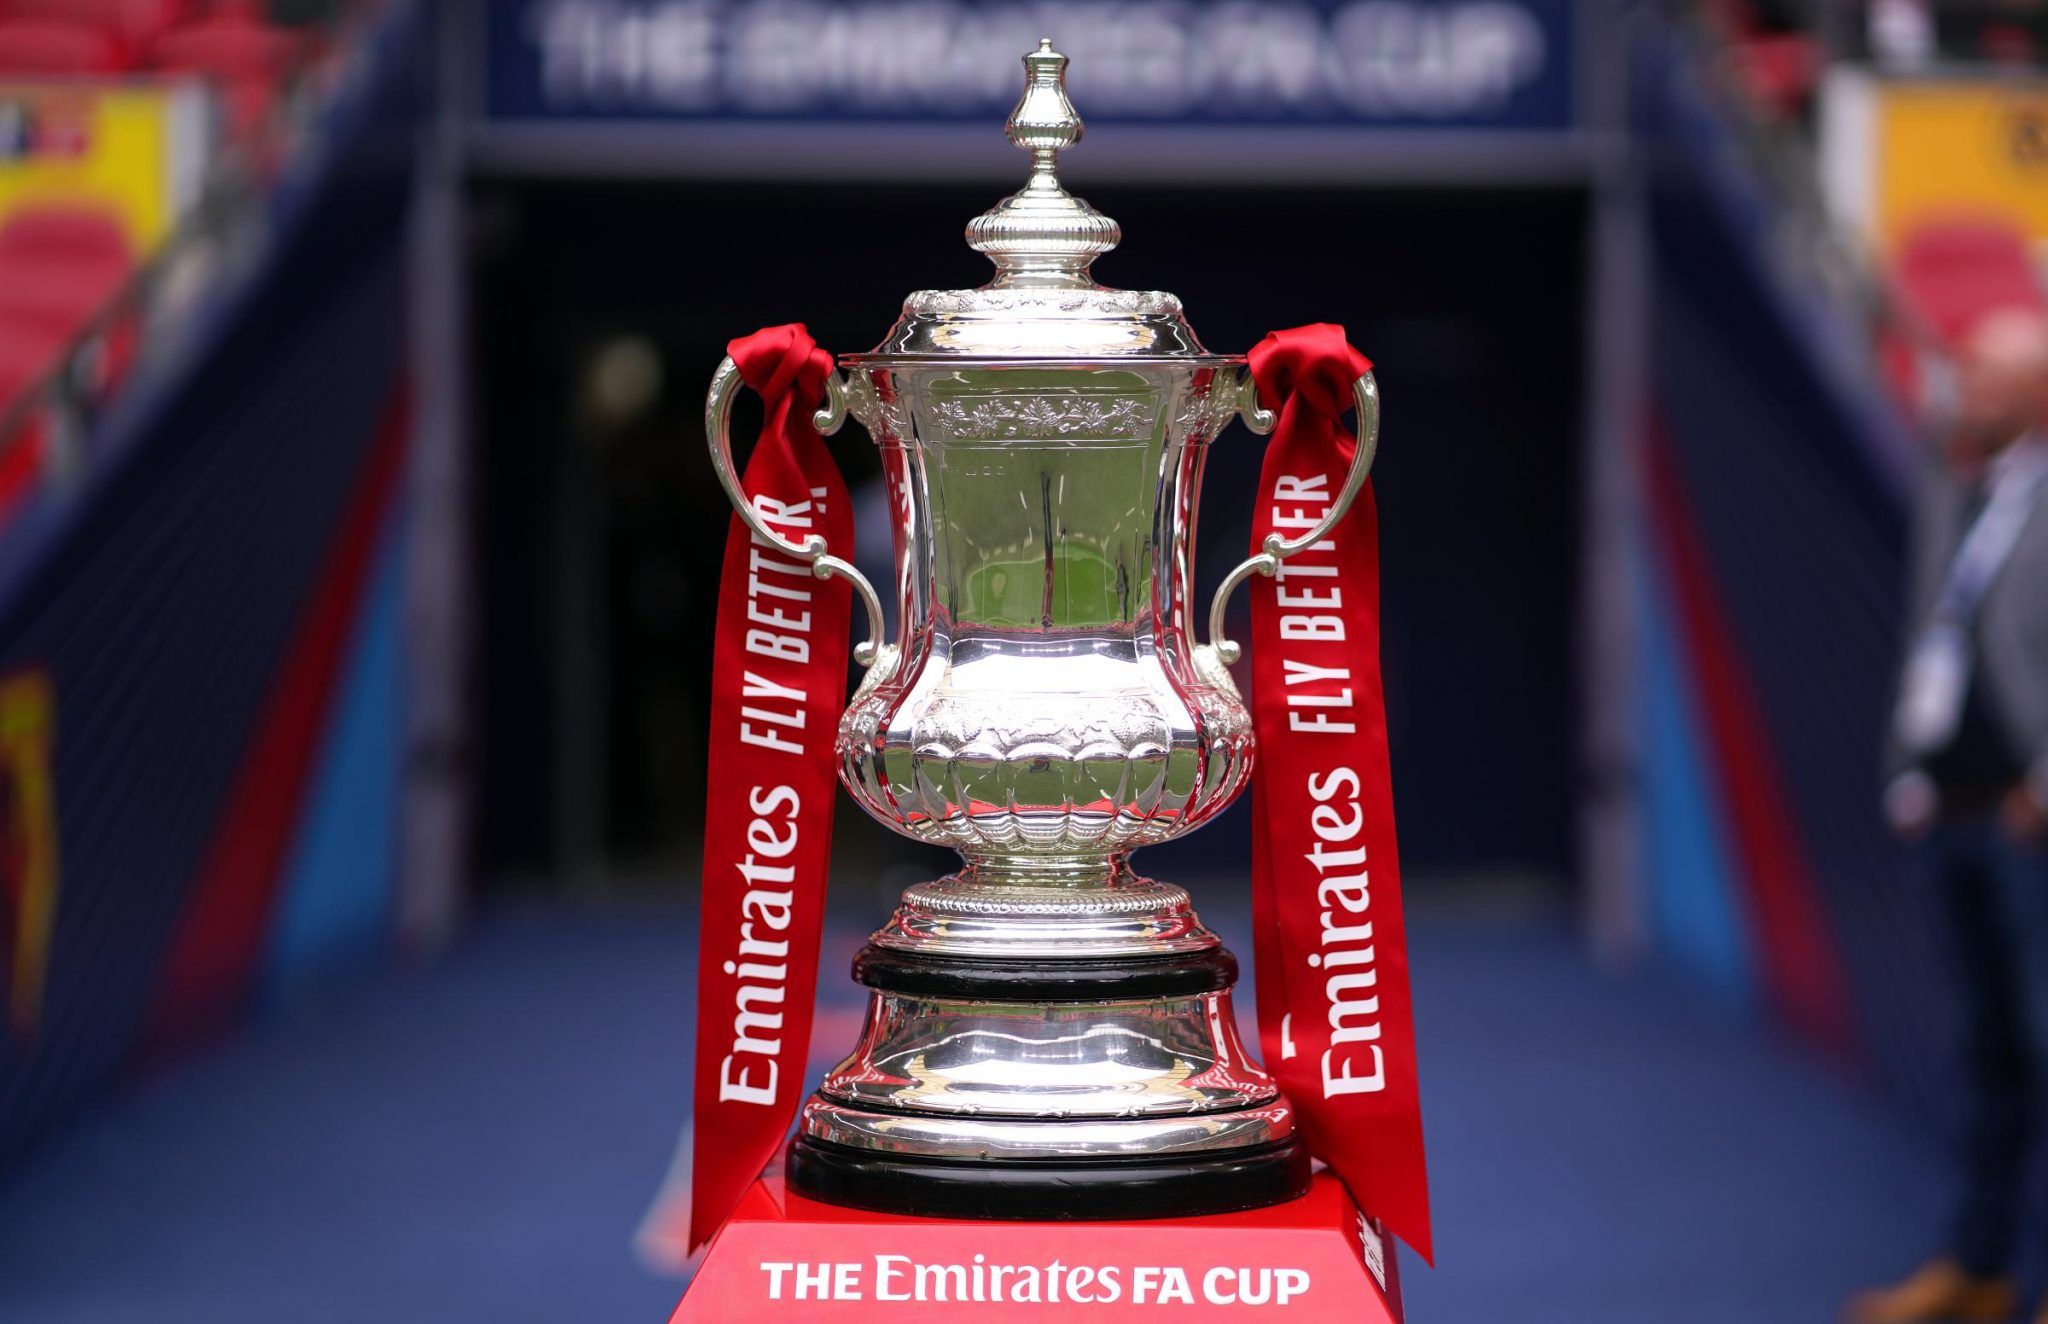 The Good, the Bad, and the Ugly – Norwich City & the FA Cup